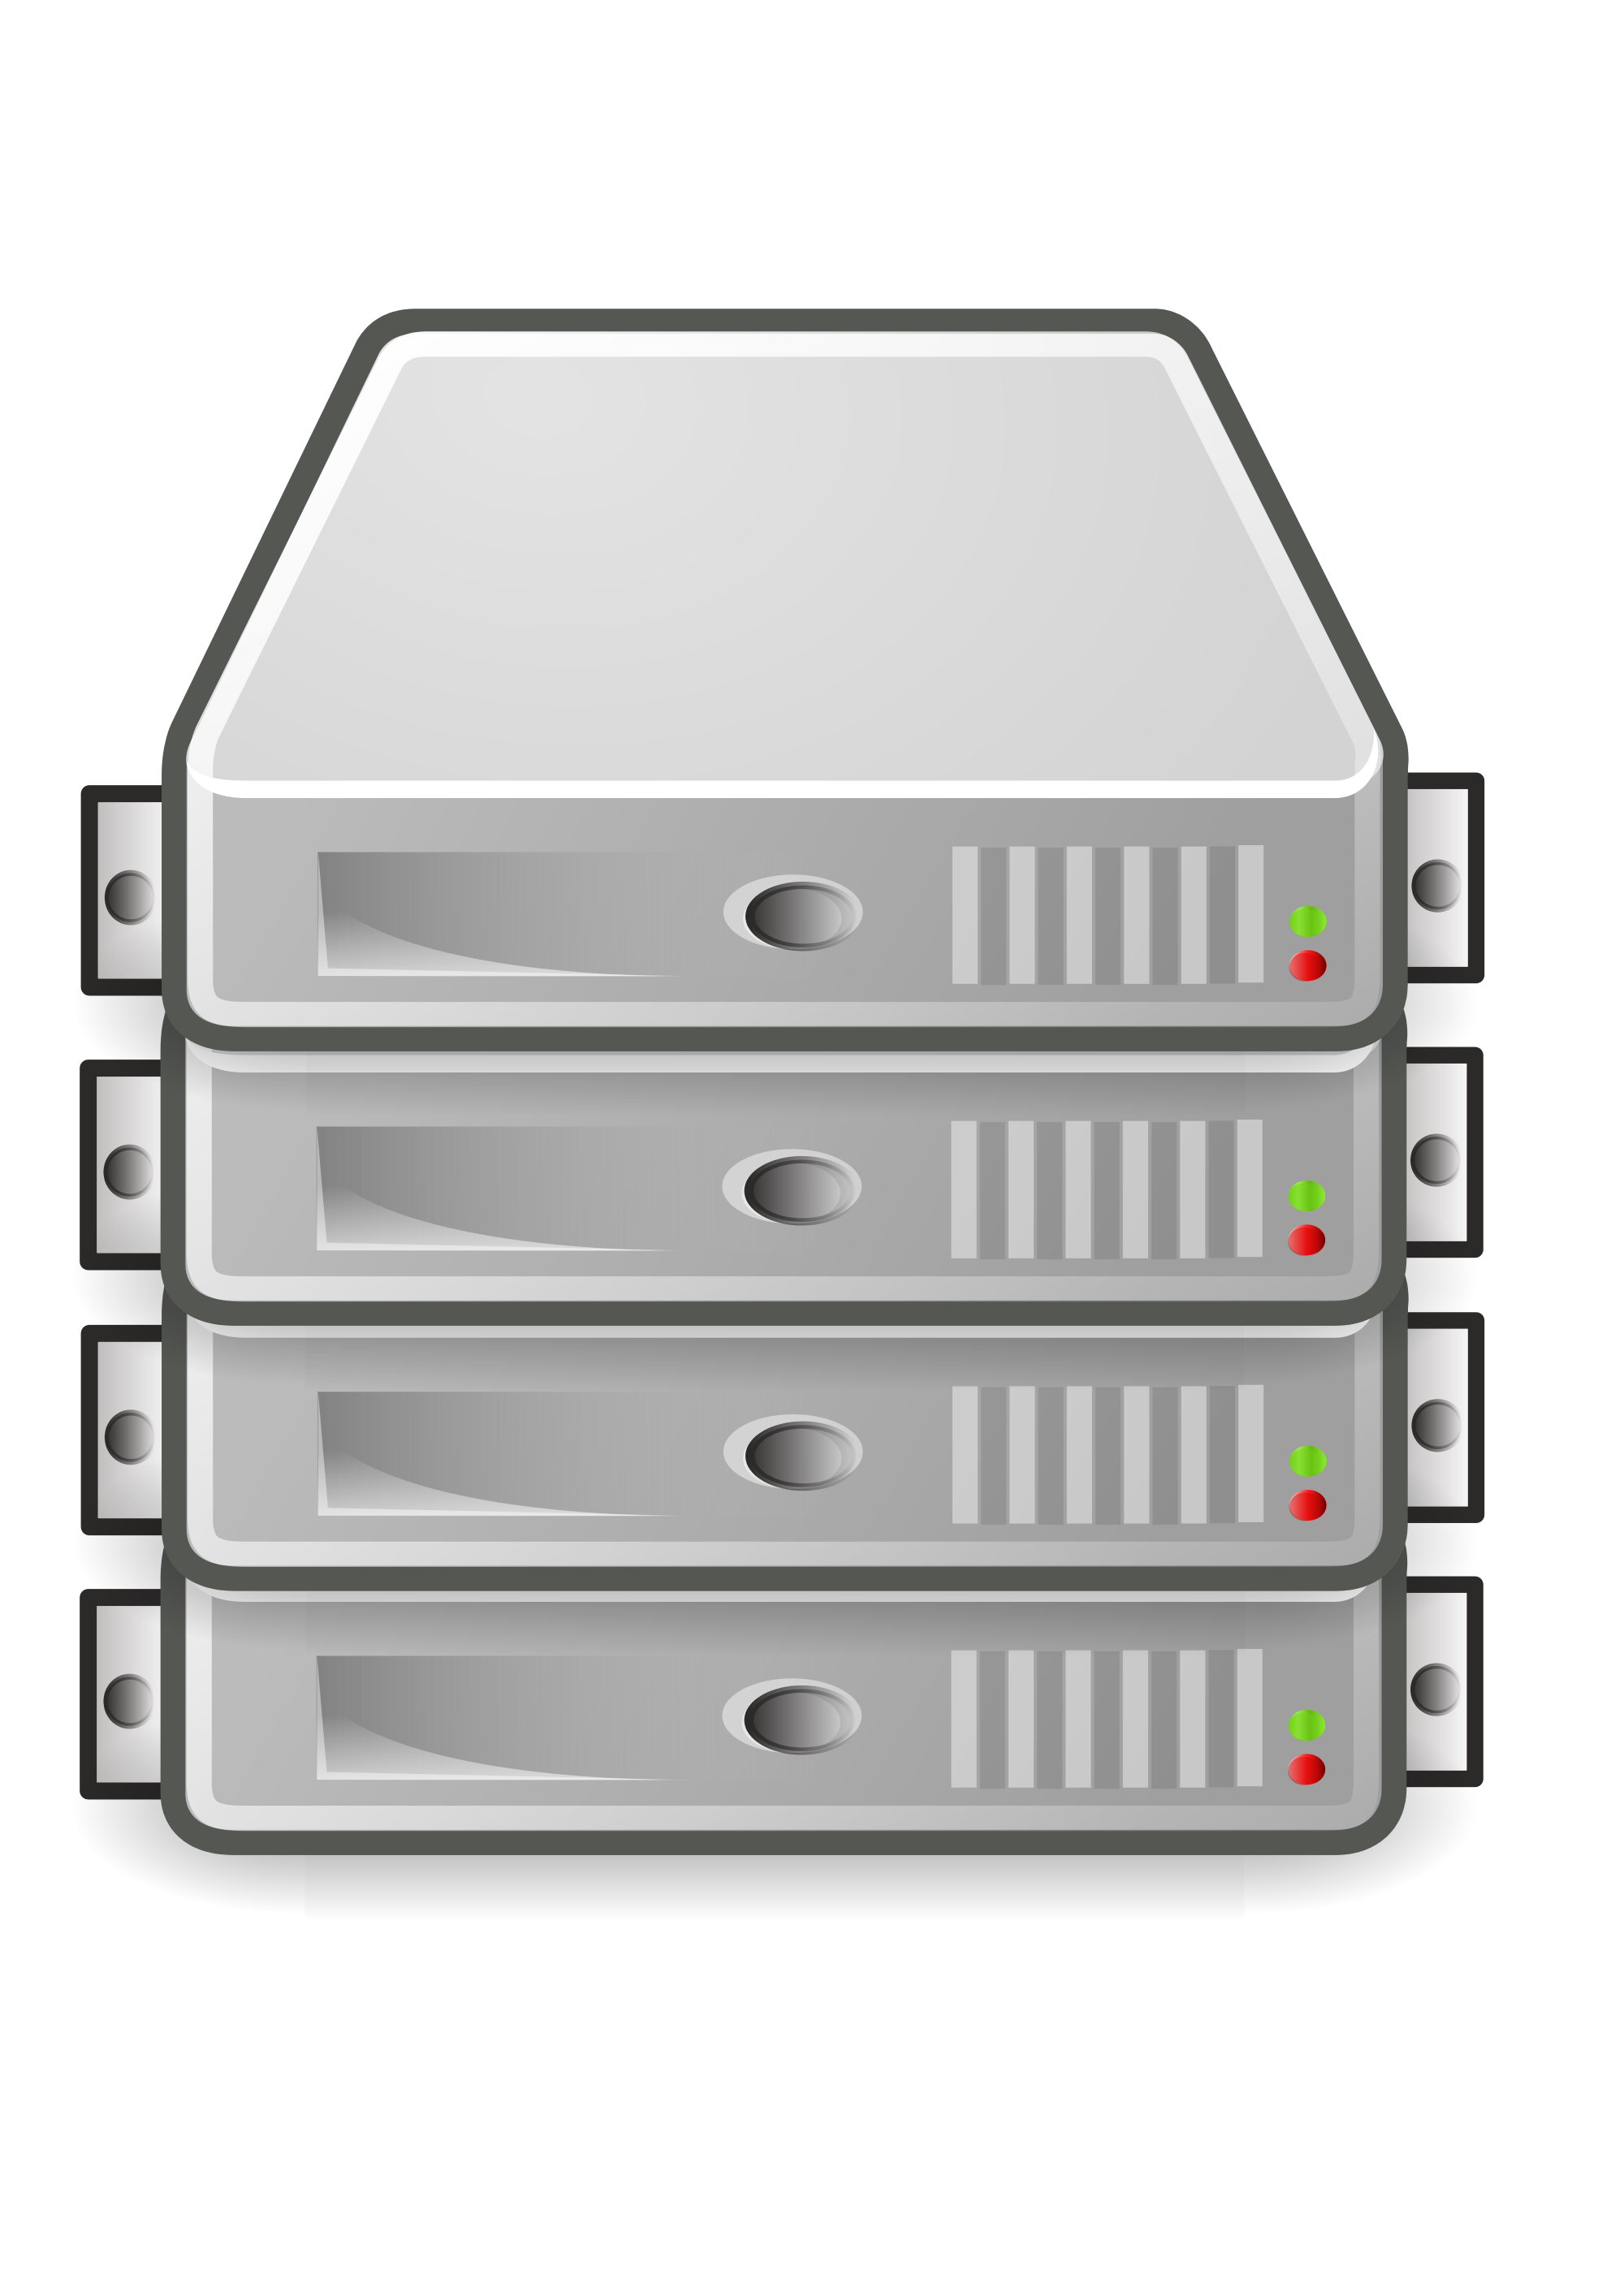 Database Icons Virtual Servers Computer Private Server PNG Image